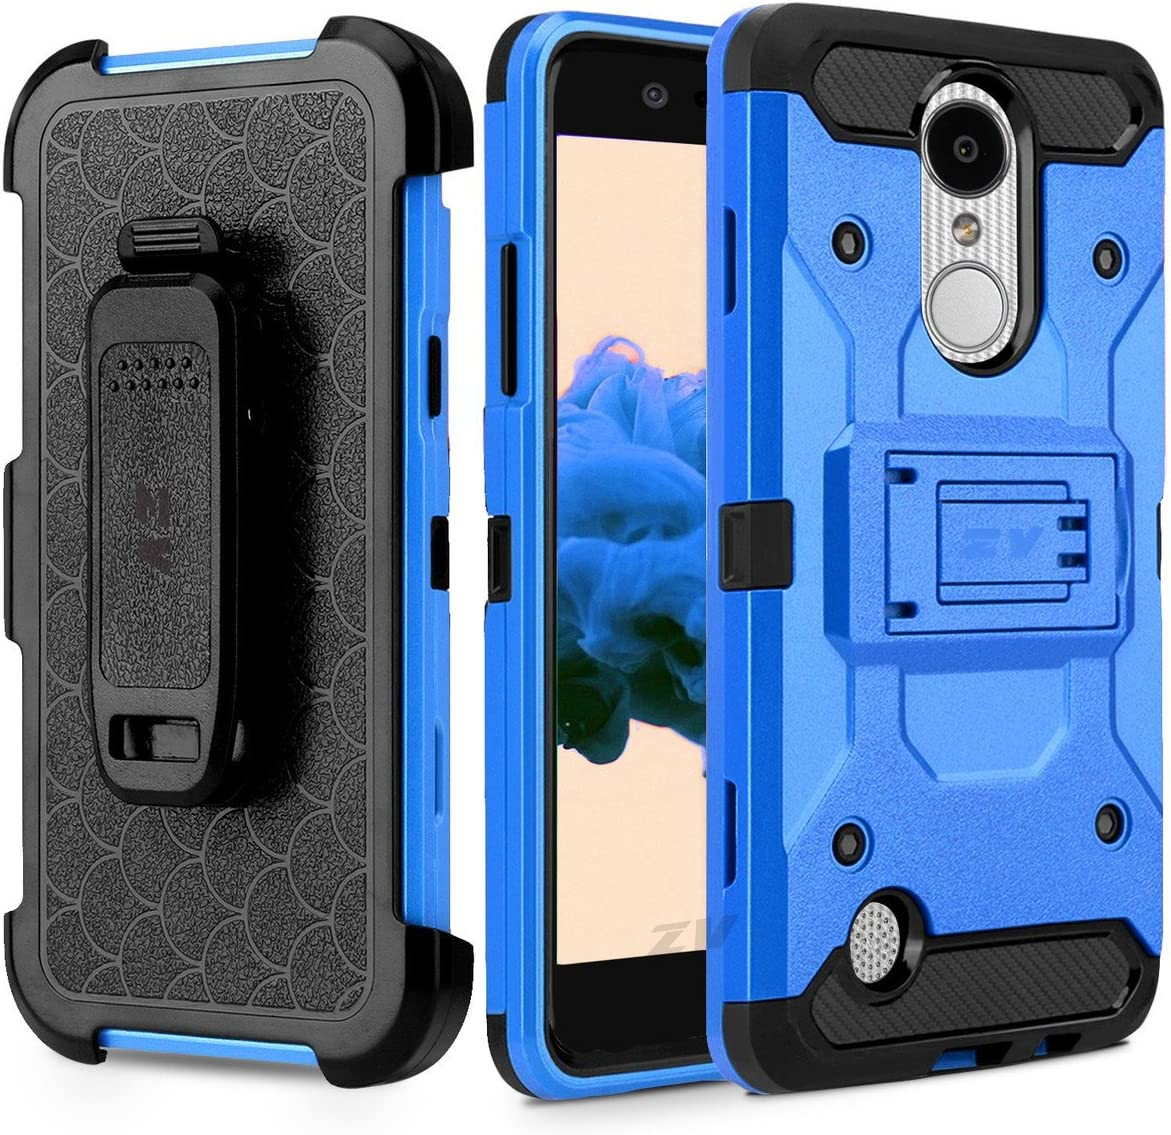 Luckiefind Case Compatible with LG Q7 / LG Q7+ Plus, Heavy Duty Armor Case with Belt Swivel Clip and Kickstand (Blue)